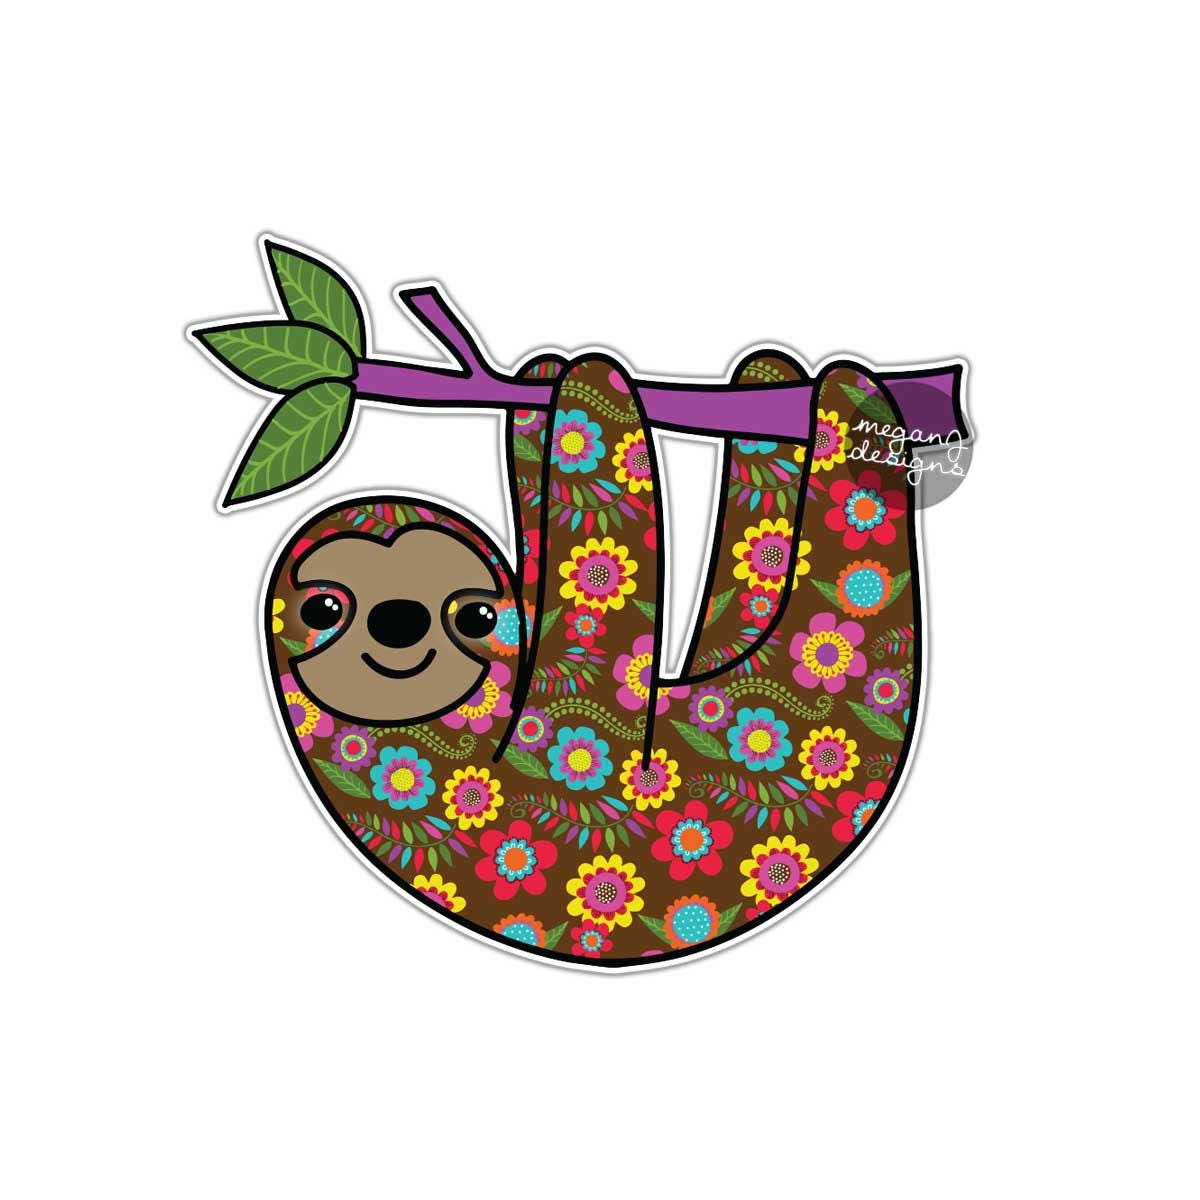 Sloth Sticker Colorful Car Decal Laptop Decal Bumper Sticker